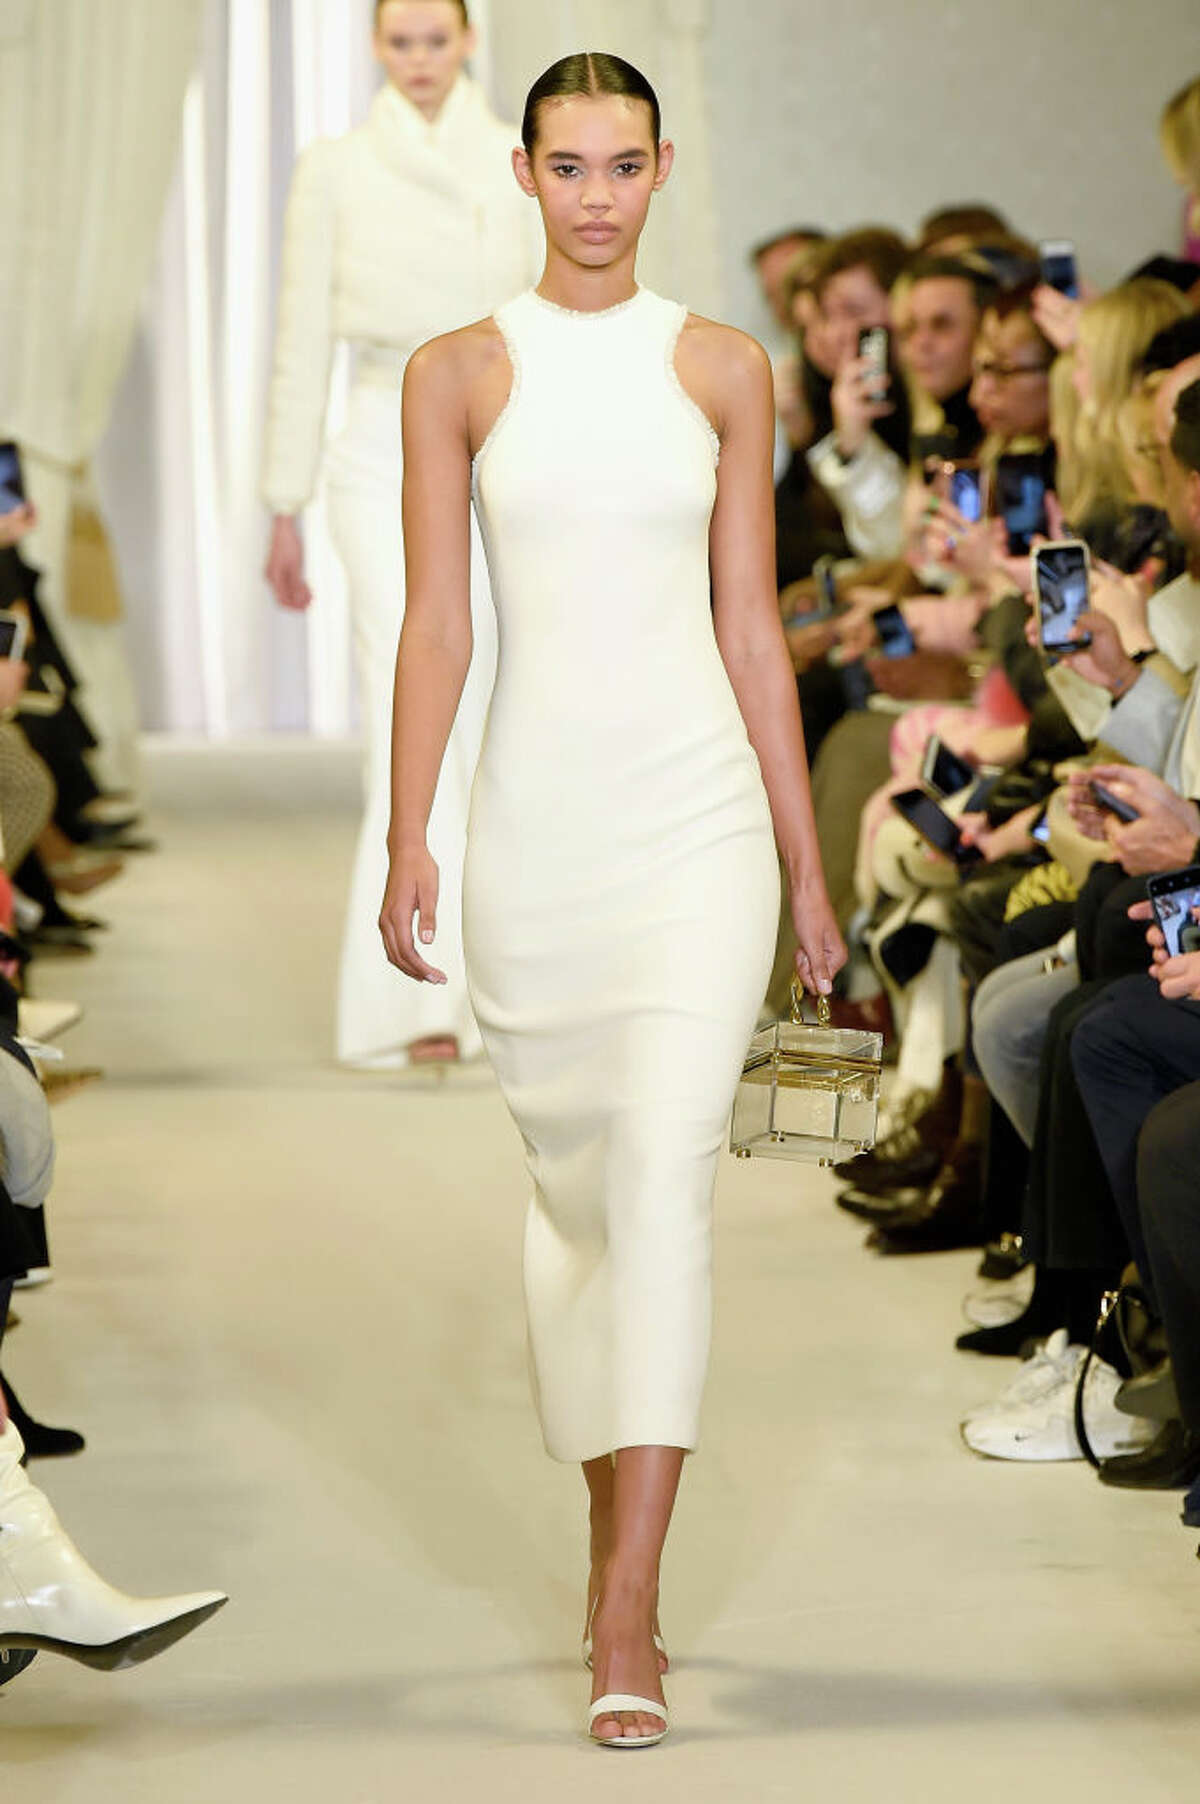 NEW YORK, NY - FEBRUARY 09: A model walks the runway for the Brandon Maxwell fashion show during New York Fashion Week: The Shows at Penn Plaza Pavilion on February 9, 2019 in New York City. (Photo by Slaven Vlasic/Getty Images for NYFW: The Shows) Brandon Maxwell's designs at New York Fashion Week on February 9,2019.